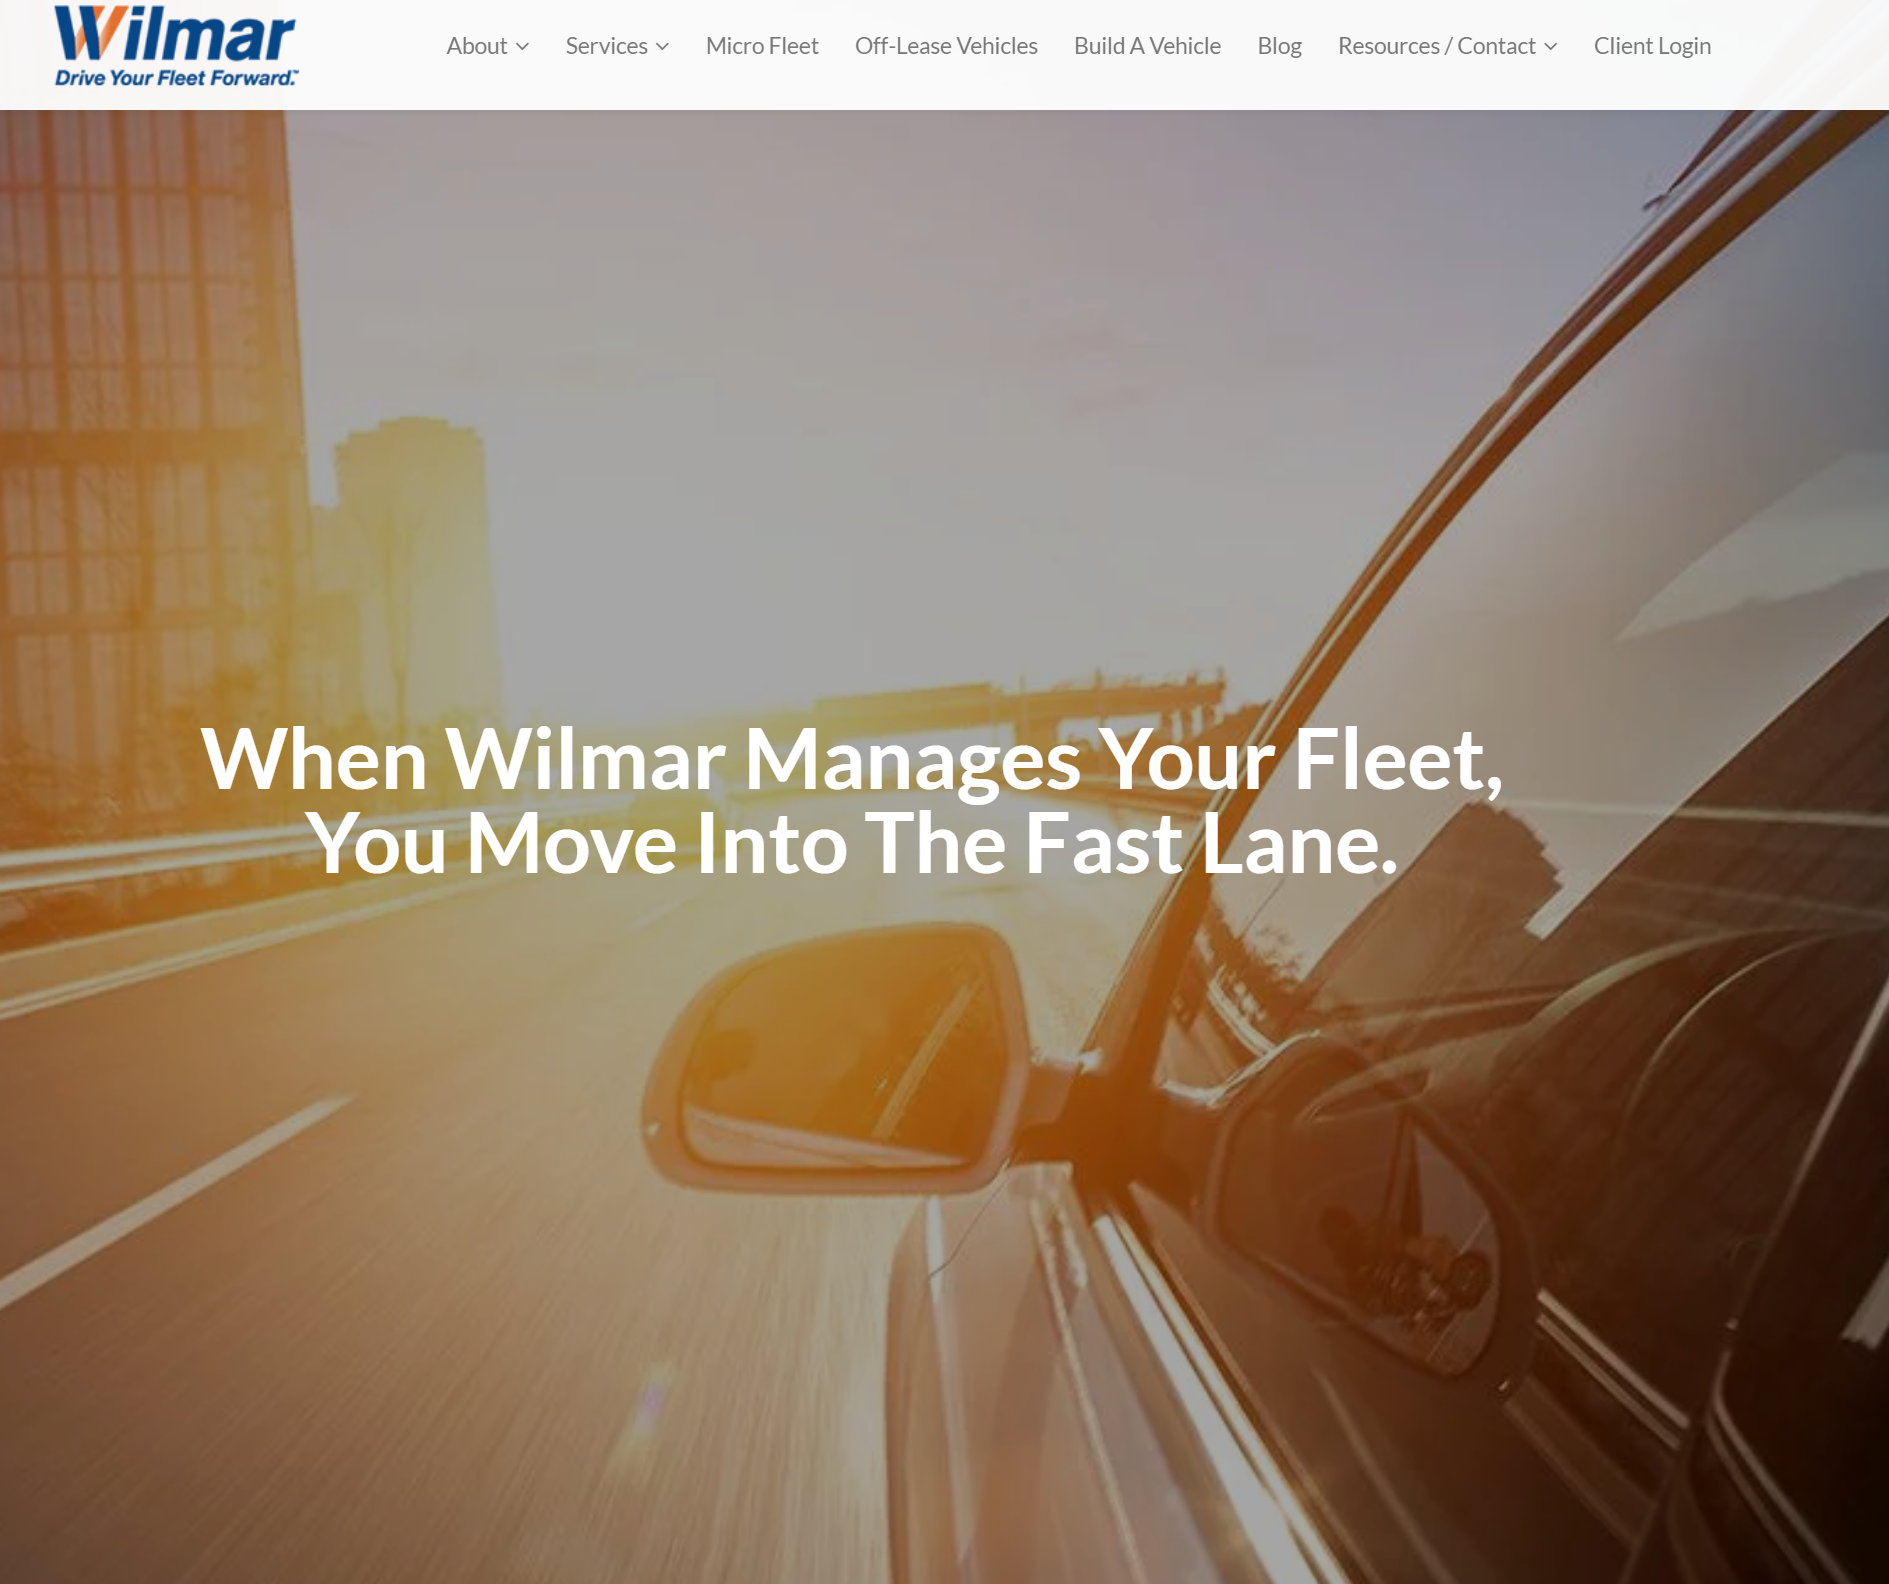 wilmar inc website